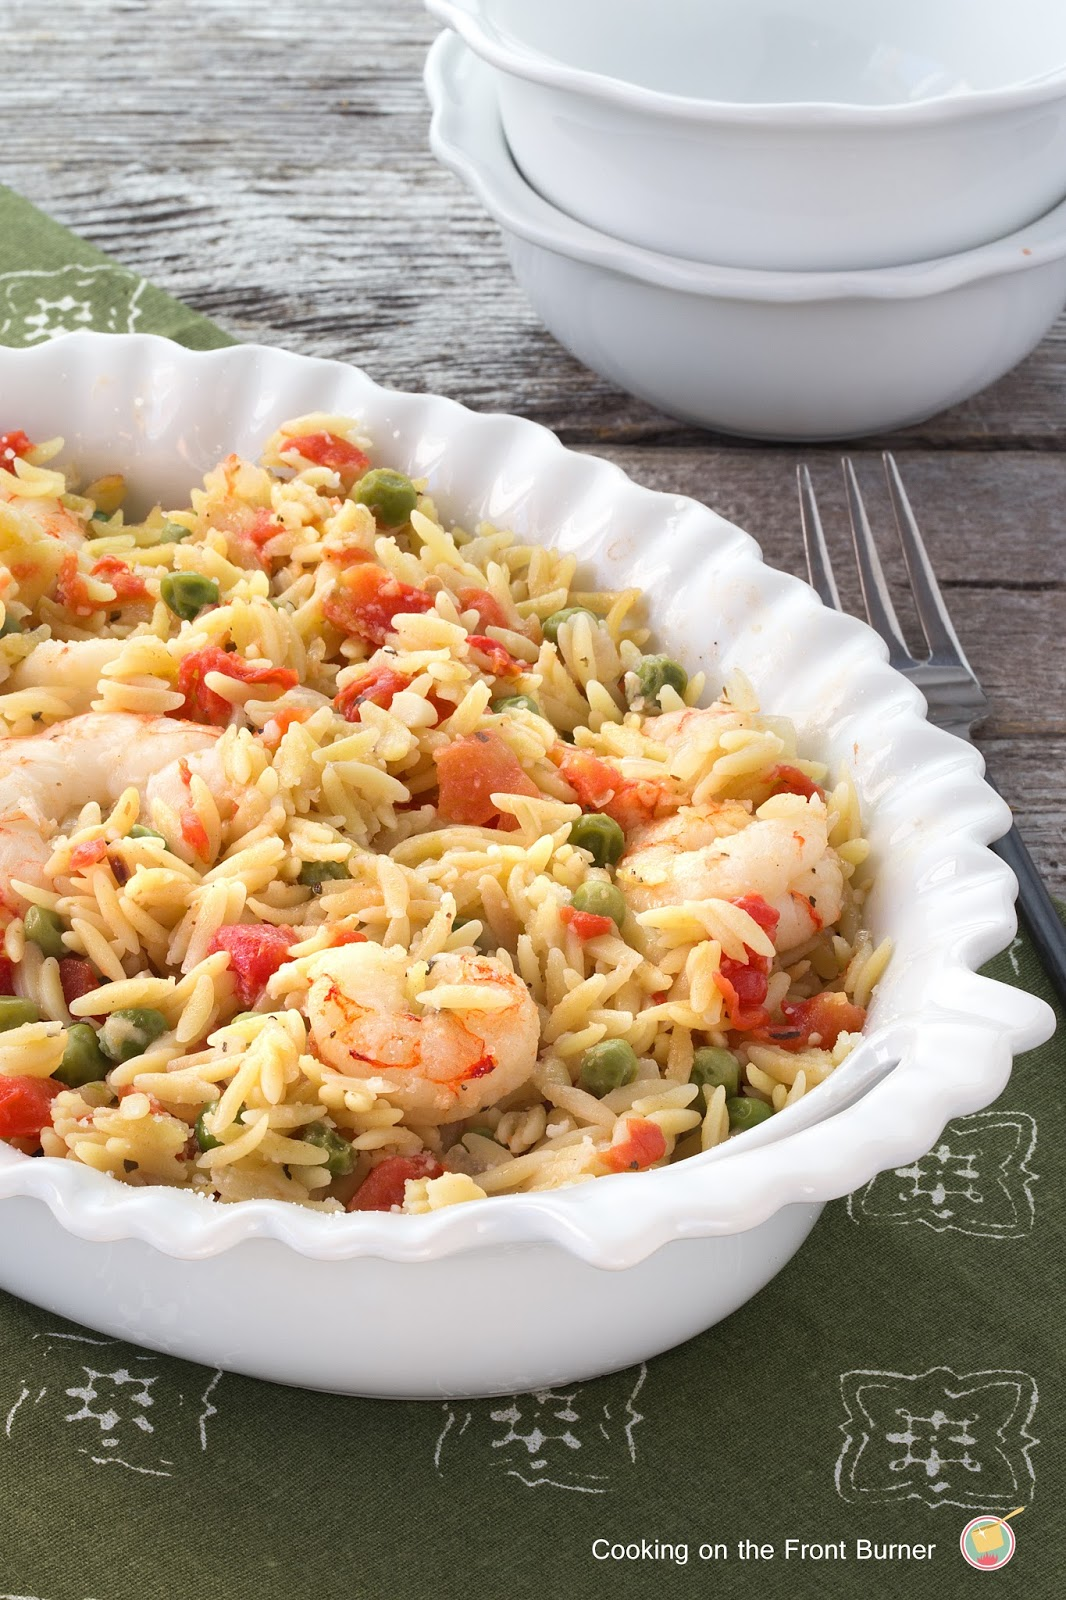 Lemon Orzo Shrimp Bake | Cooking on the Front Burner